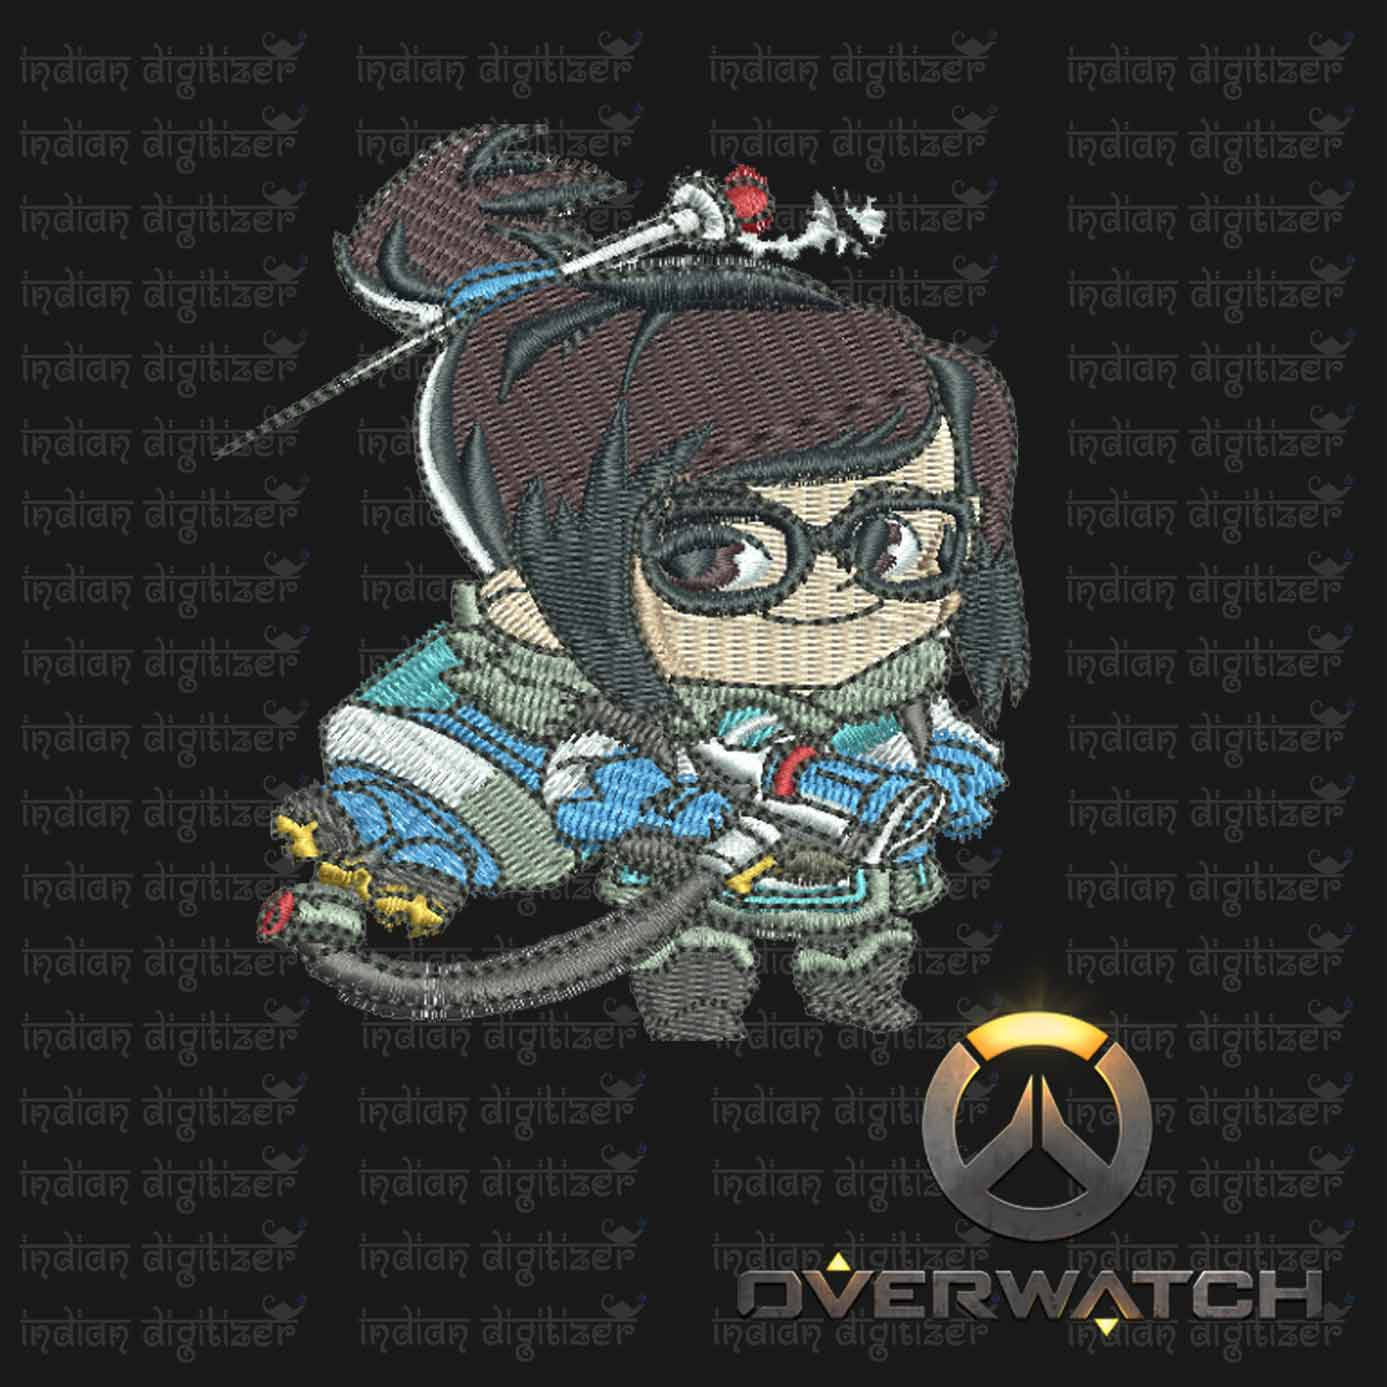 Overwatch Embroidery Designs - Mei individual character for 4x4in hoop - resizable with freely downloadable software.